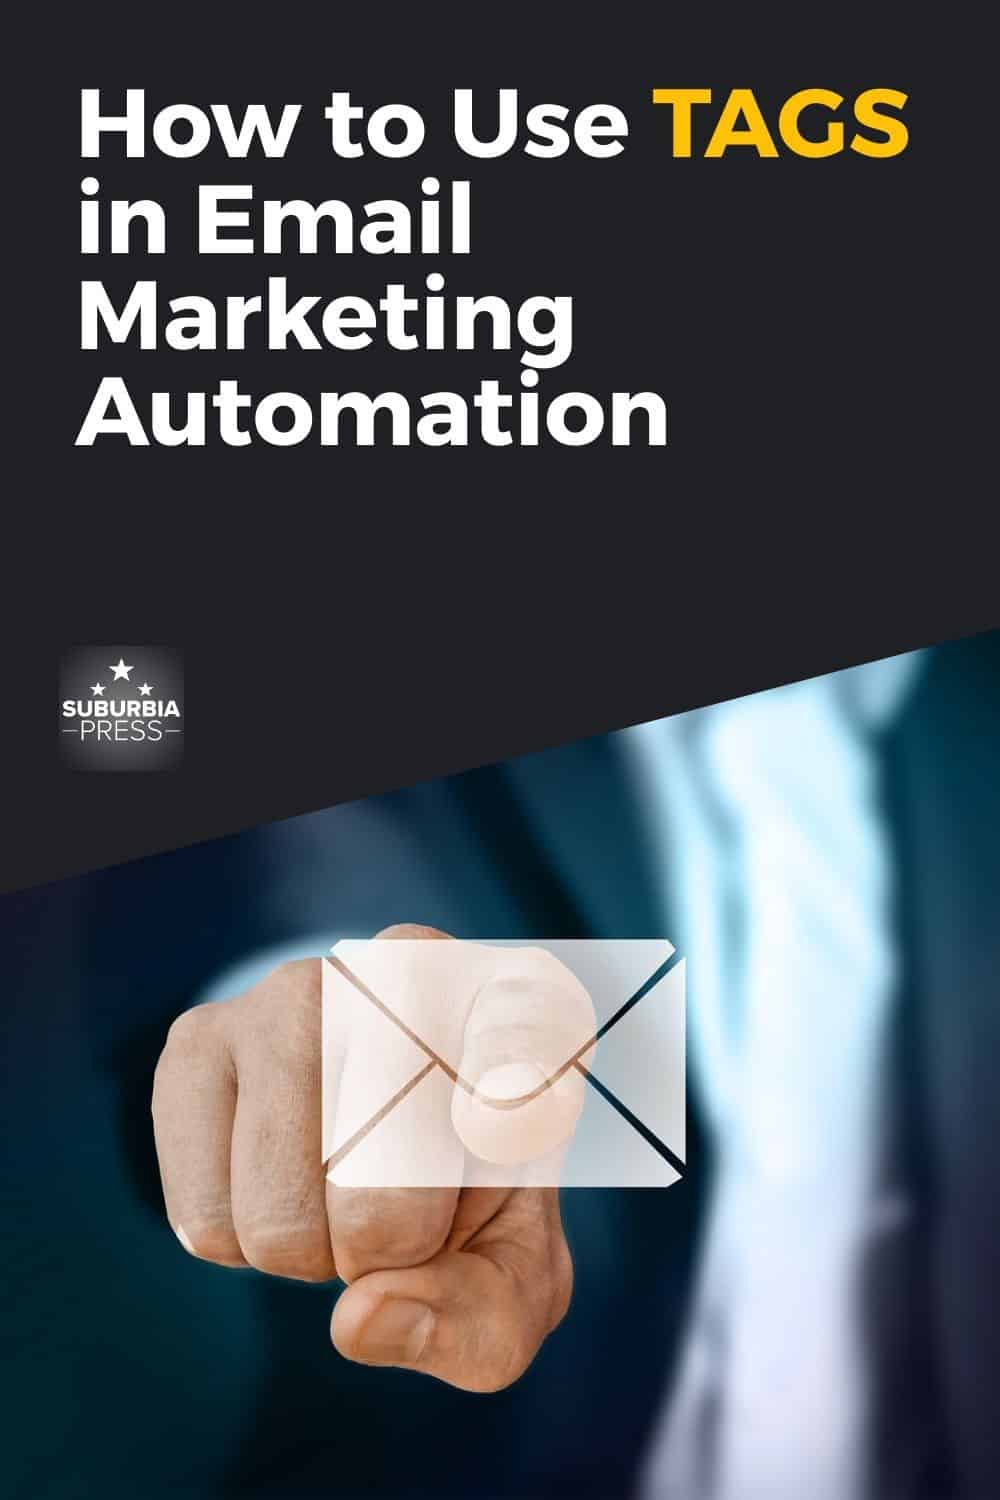 How to Use TAGS in Email Marketing Automation